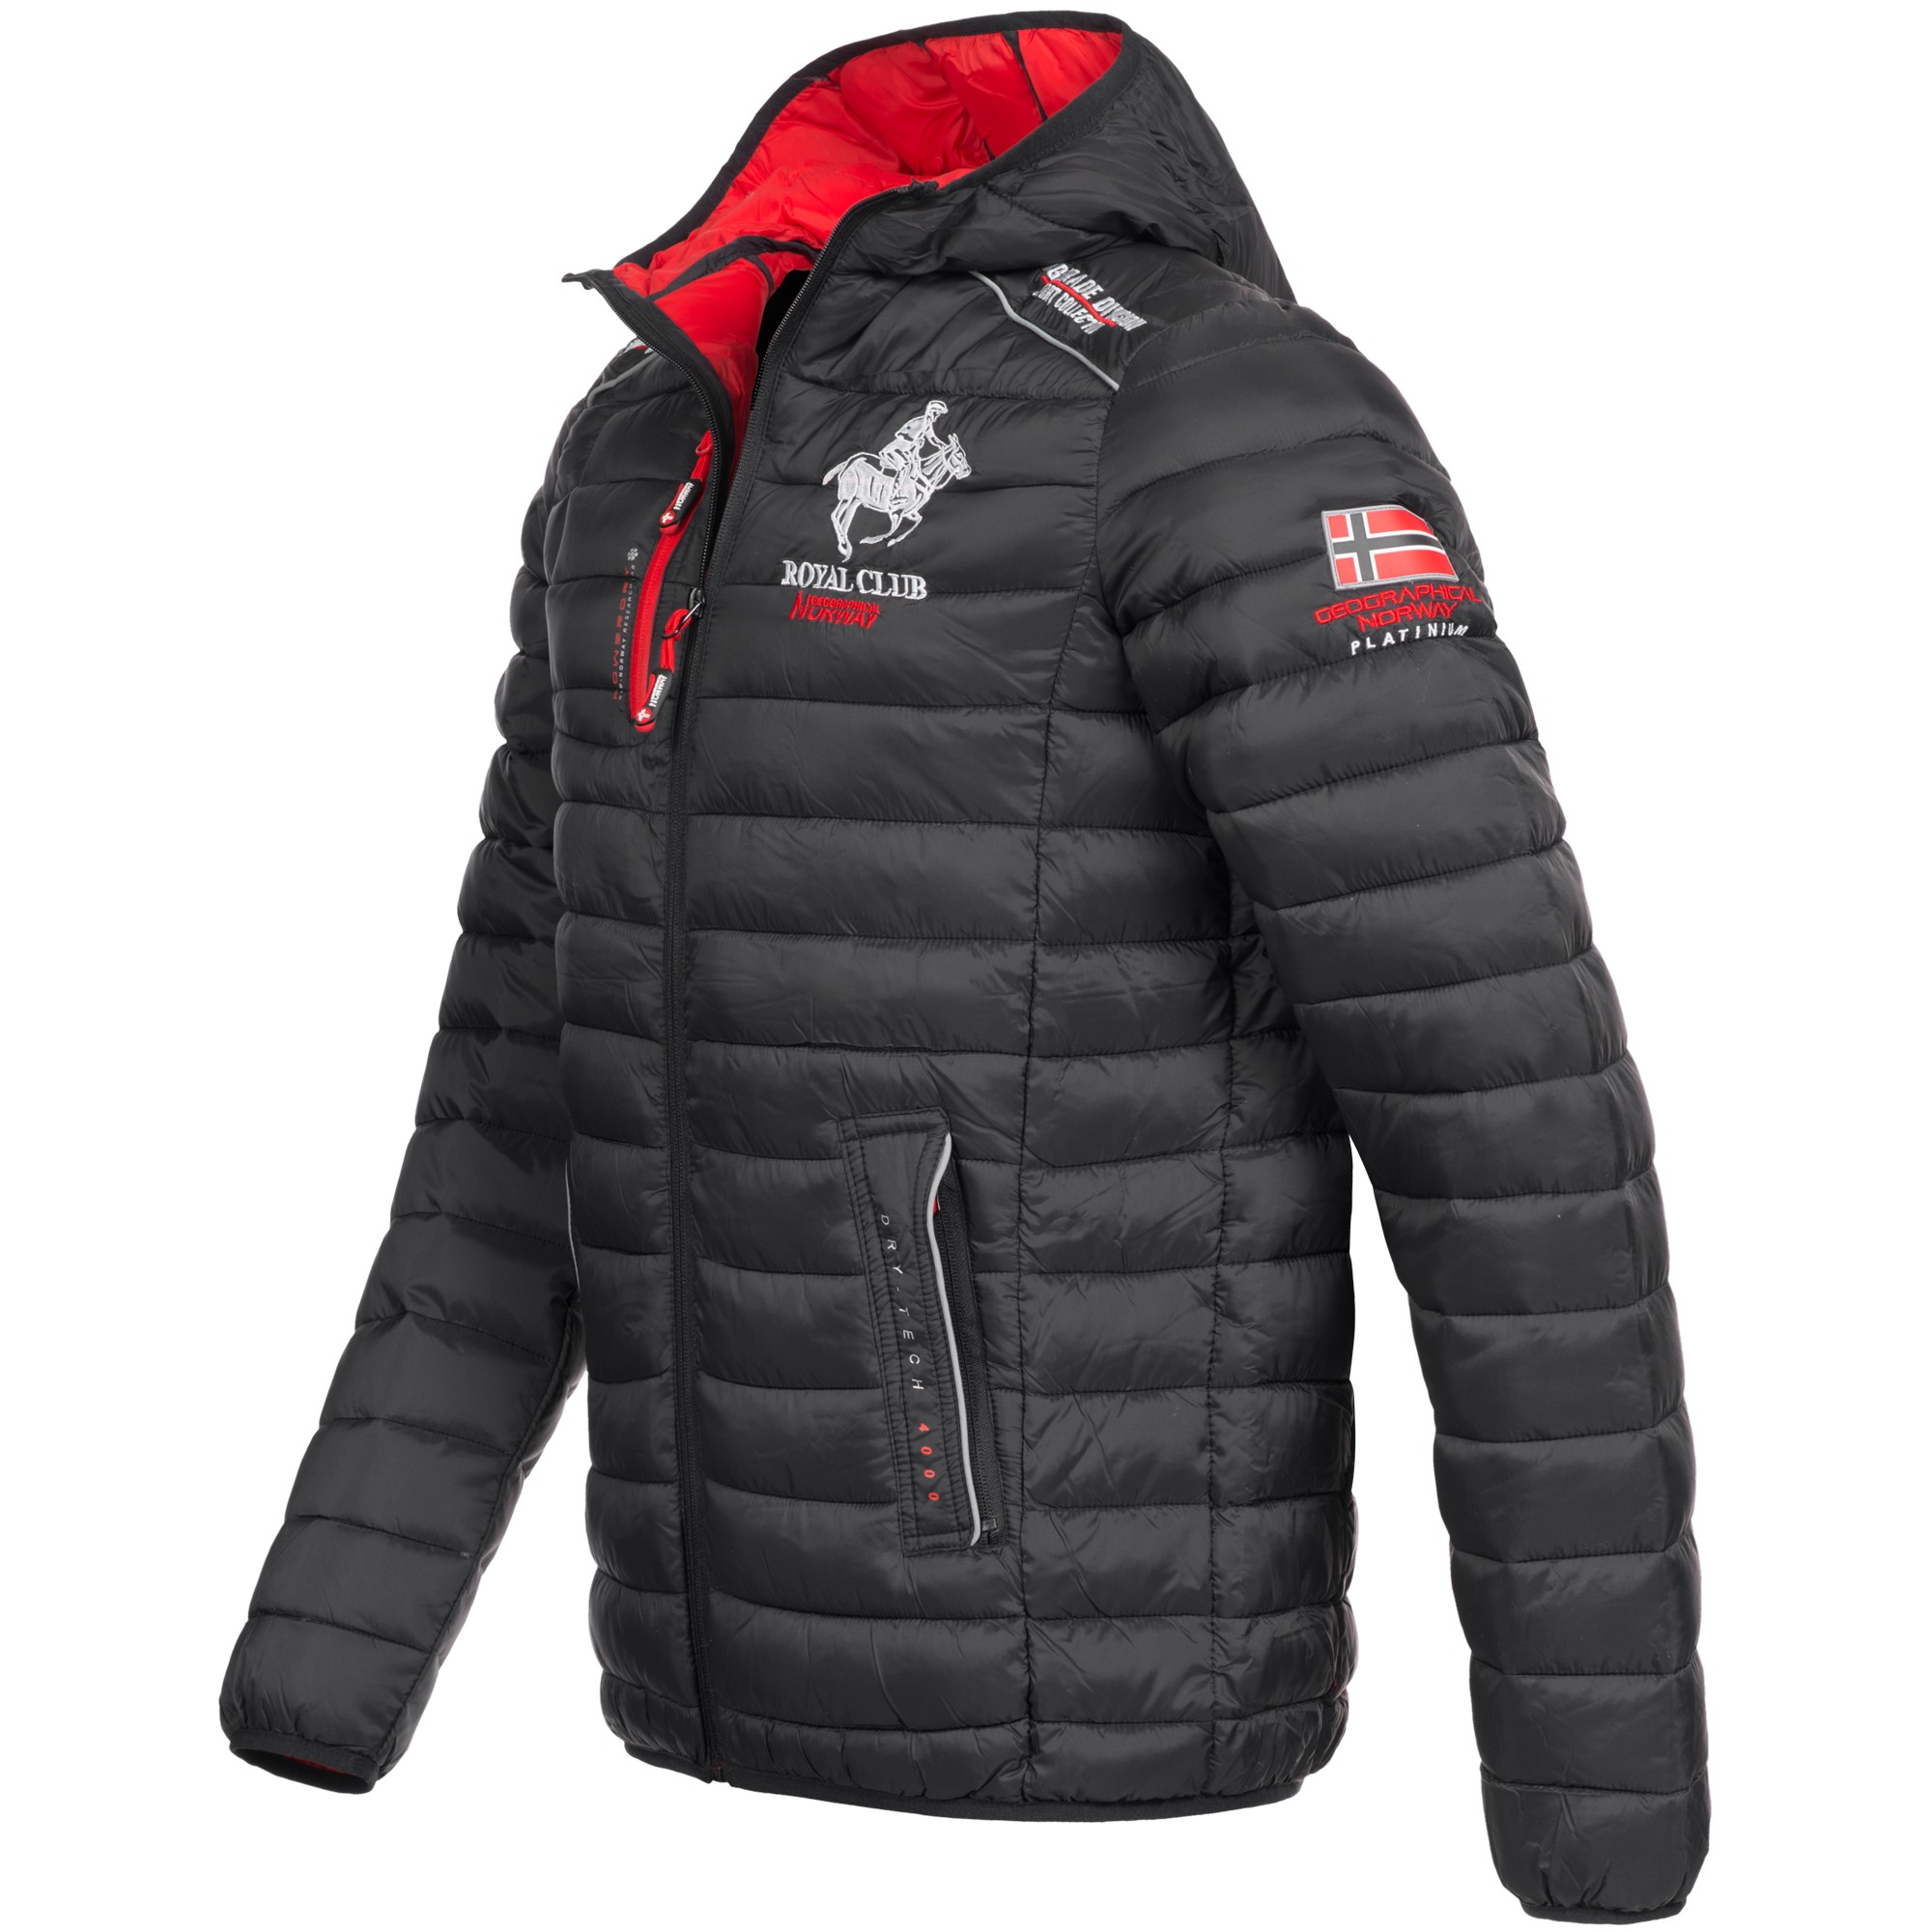 geographical norway bryan herren winterjacke jacke steppjacke mit tasche gr s xxxl 4farben. Black Bedroom Furniture Sets. Home Design Ideas